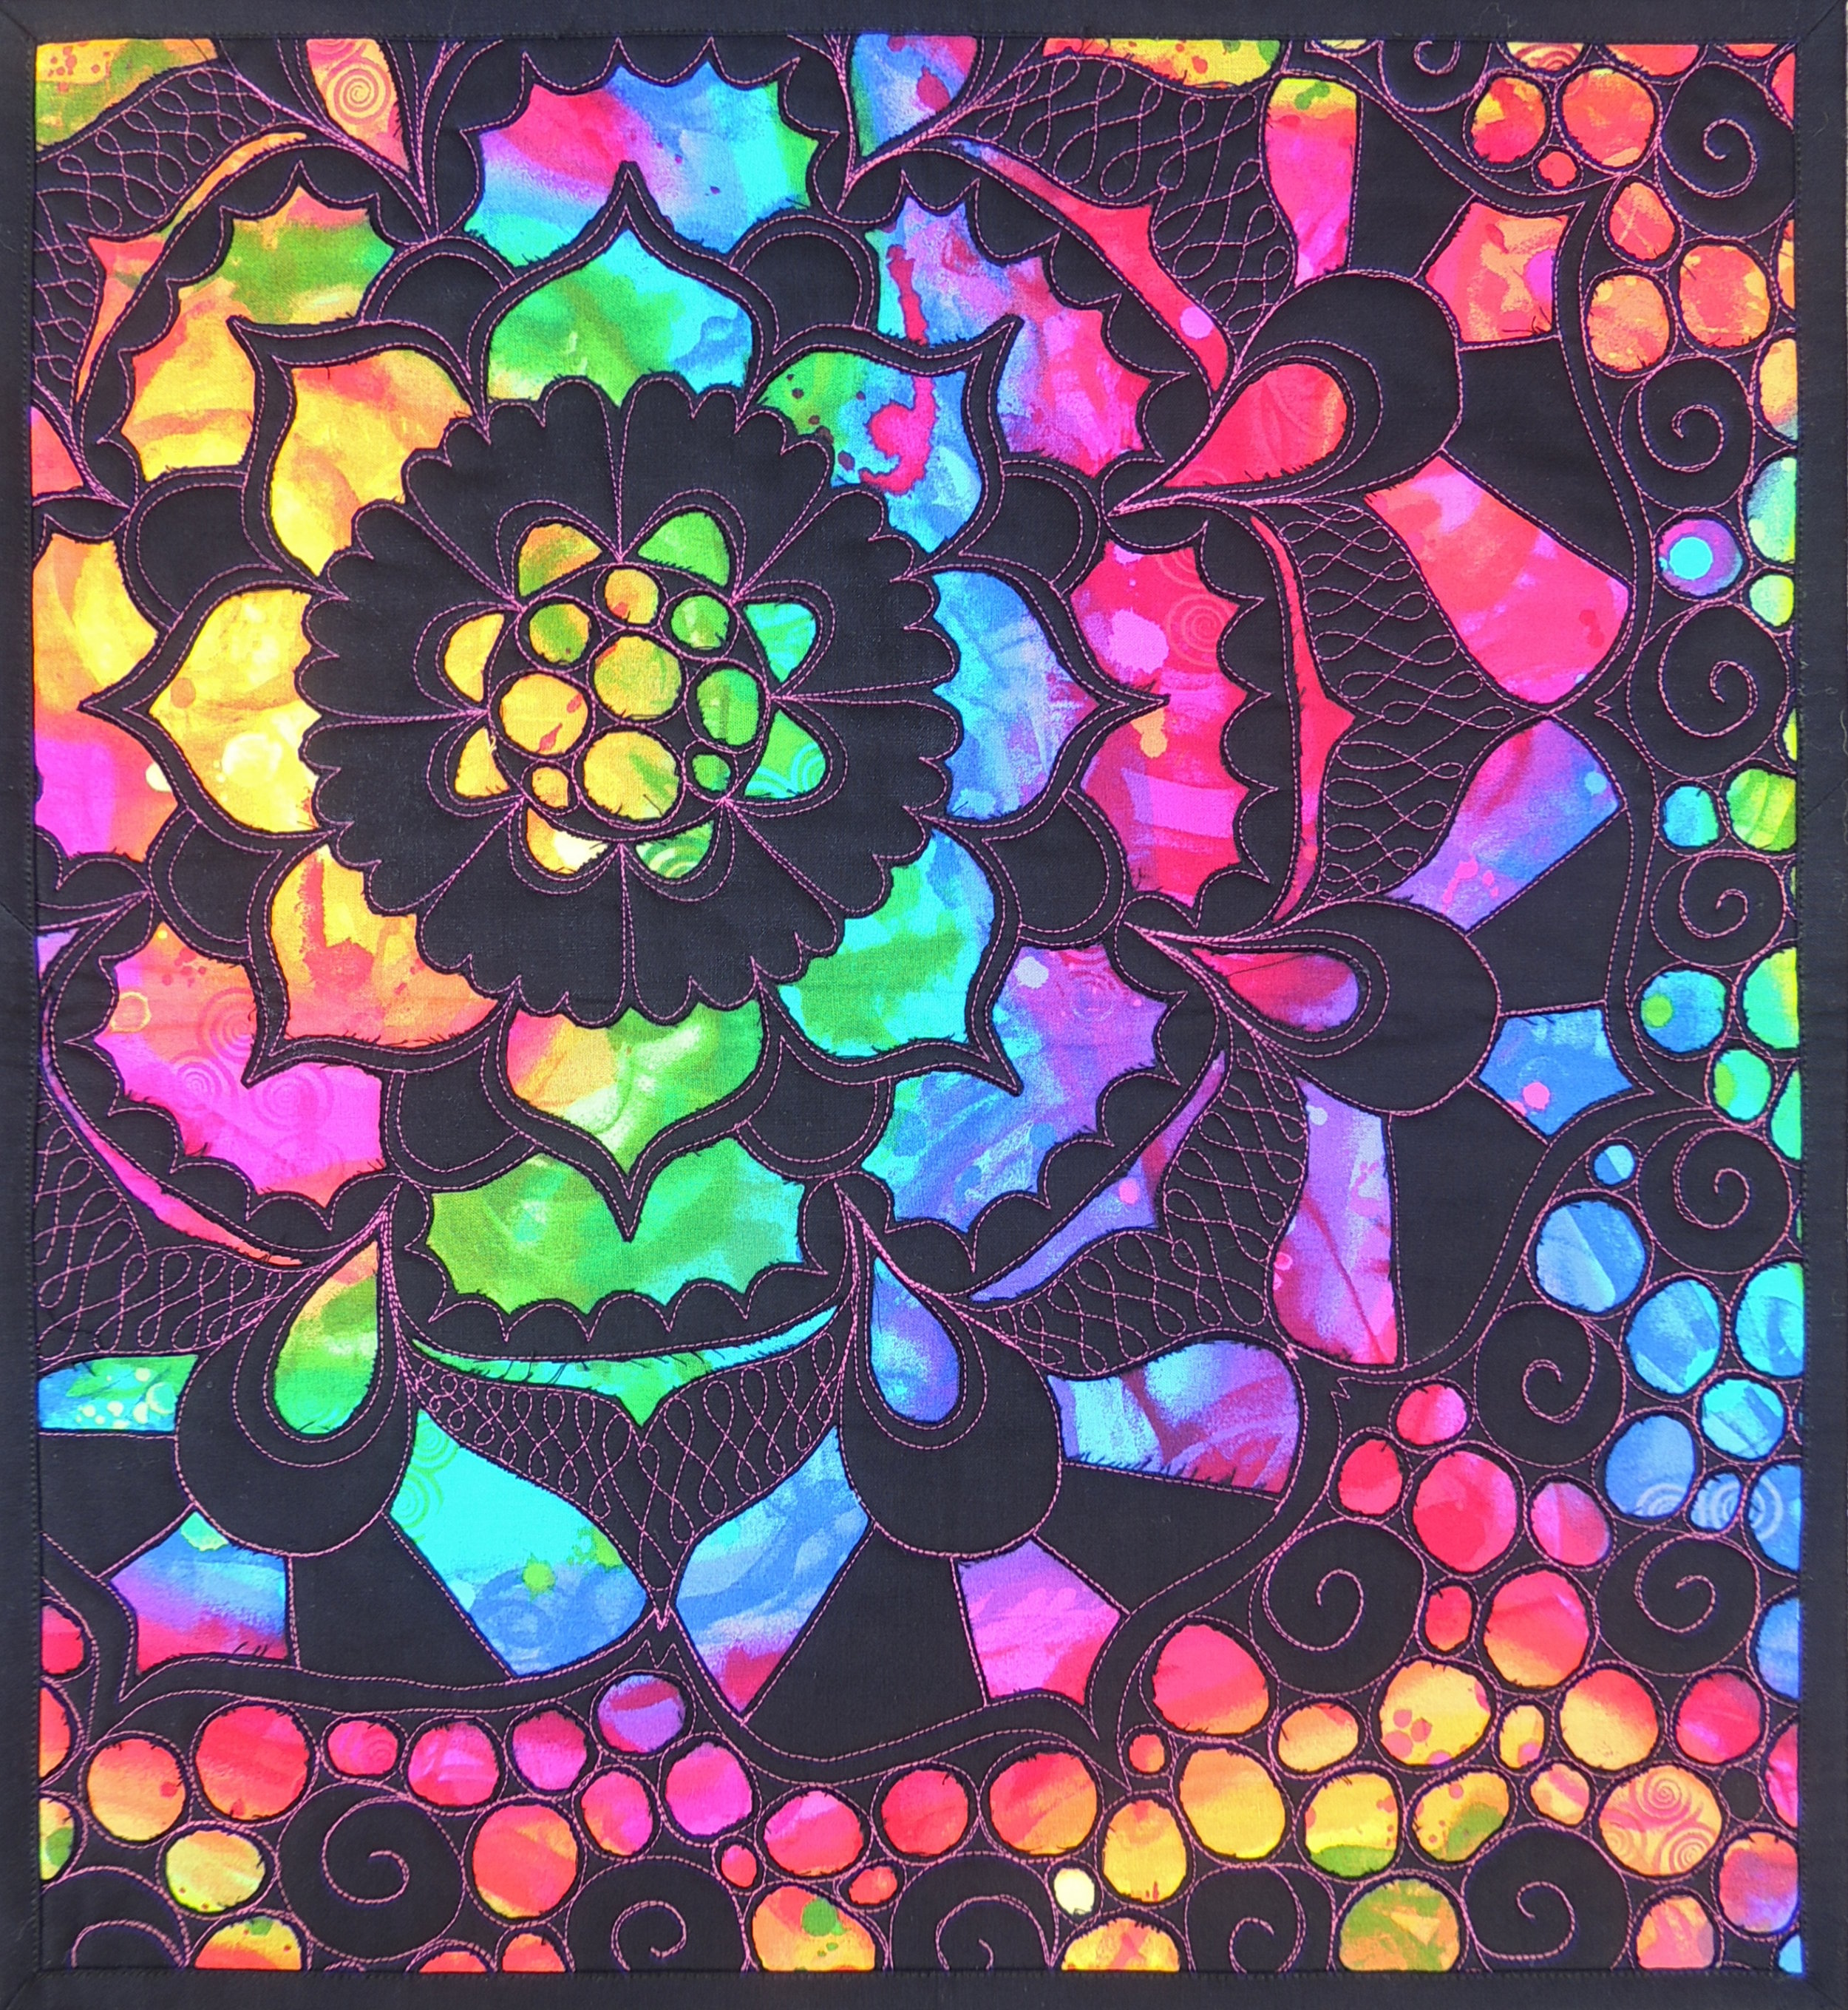 MBeach_Crayon Etched Mandala_PQ7_Childs Play.JPG